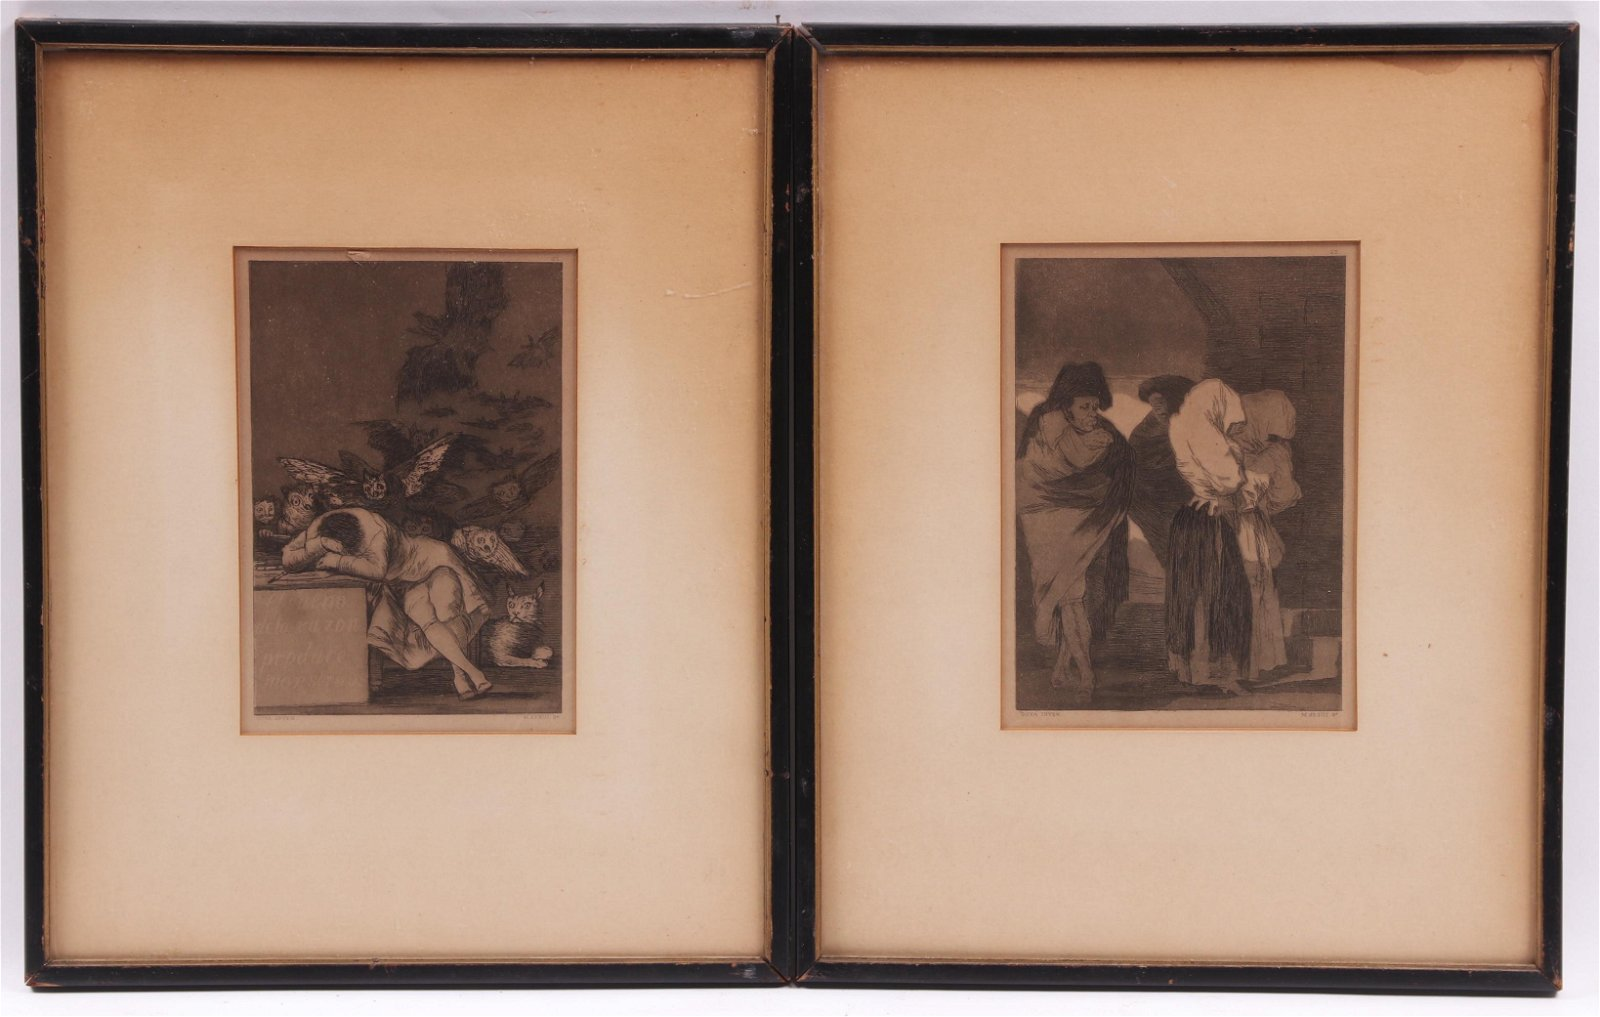 Miguel Segui After Goya, Two Etchings